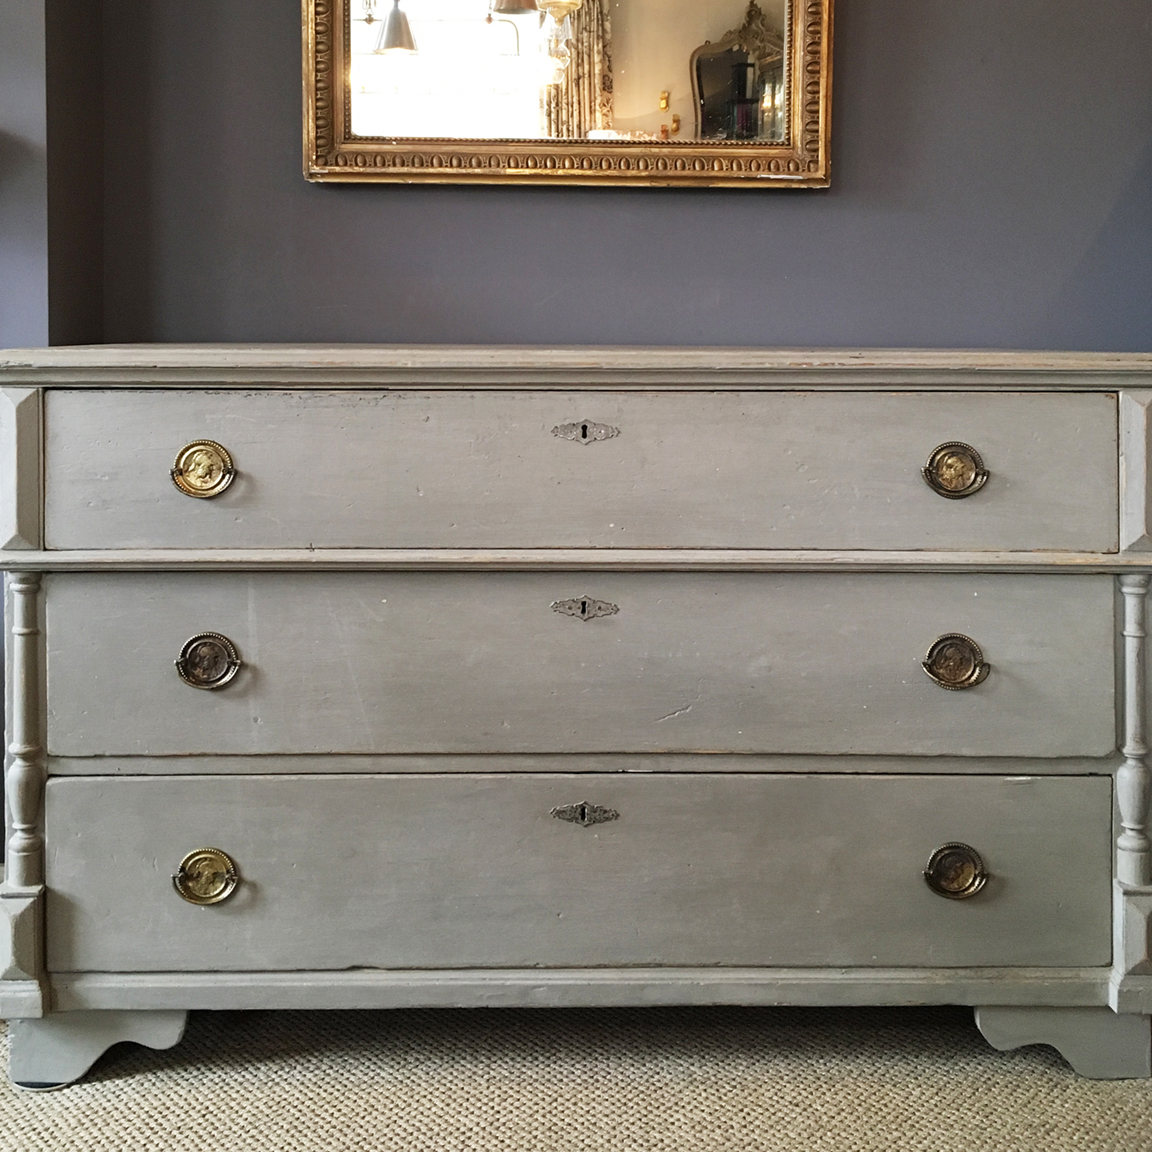 Antique chest of drawers in soft grey